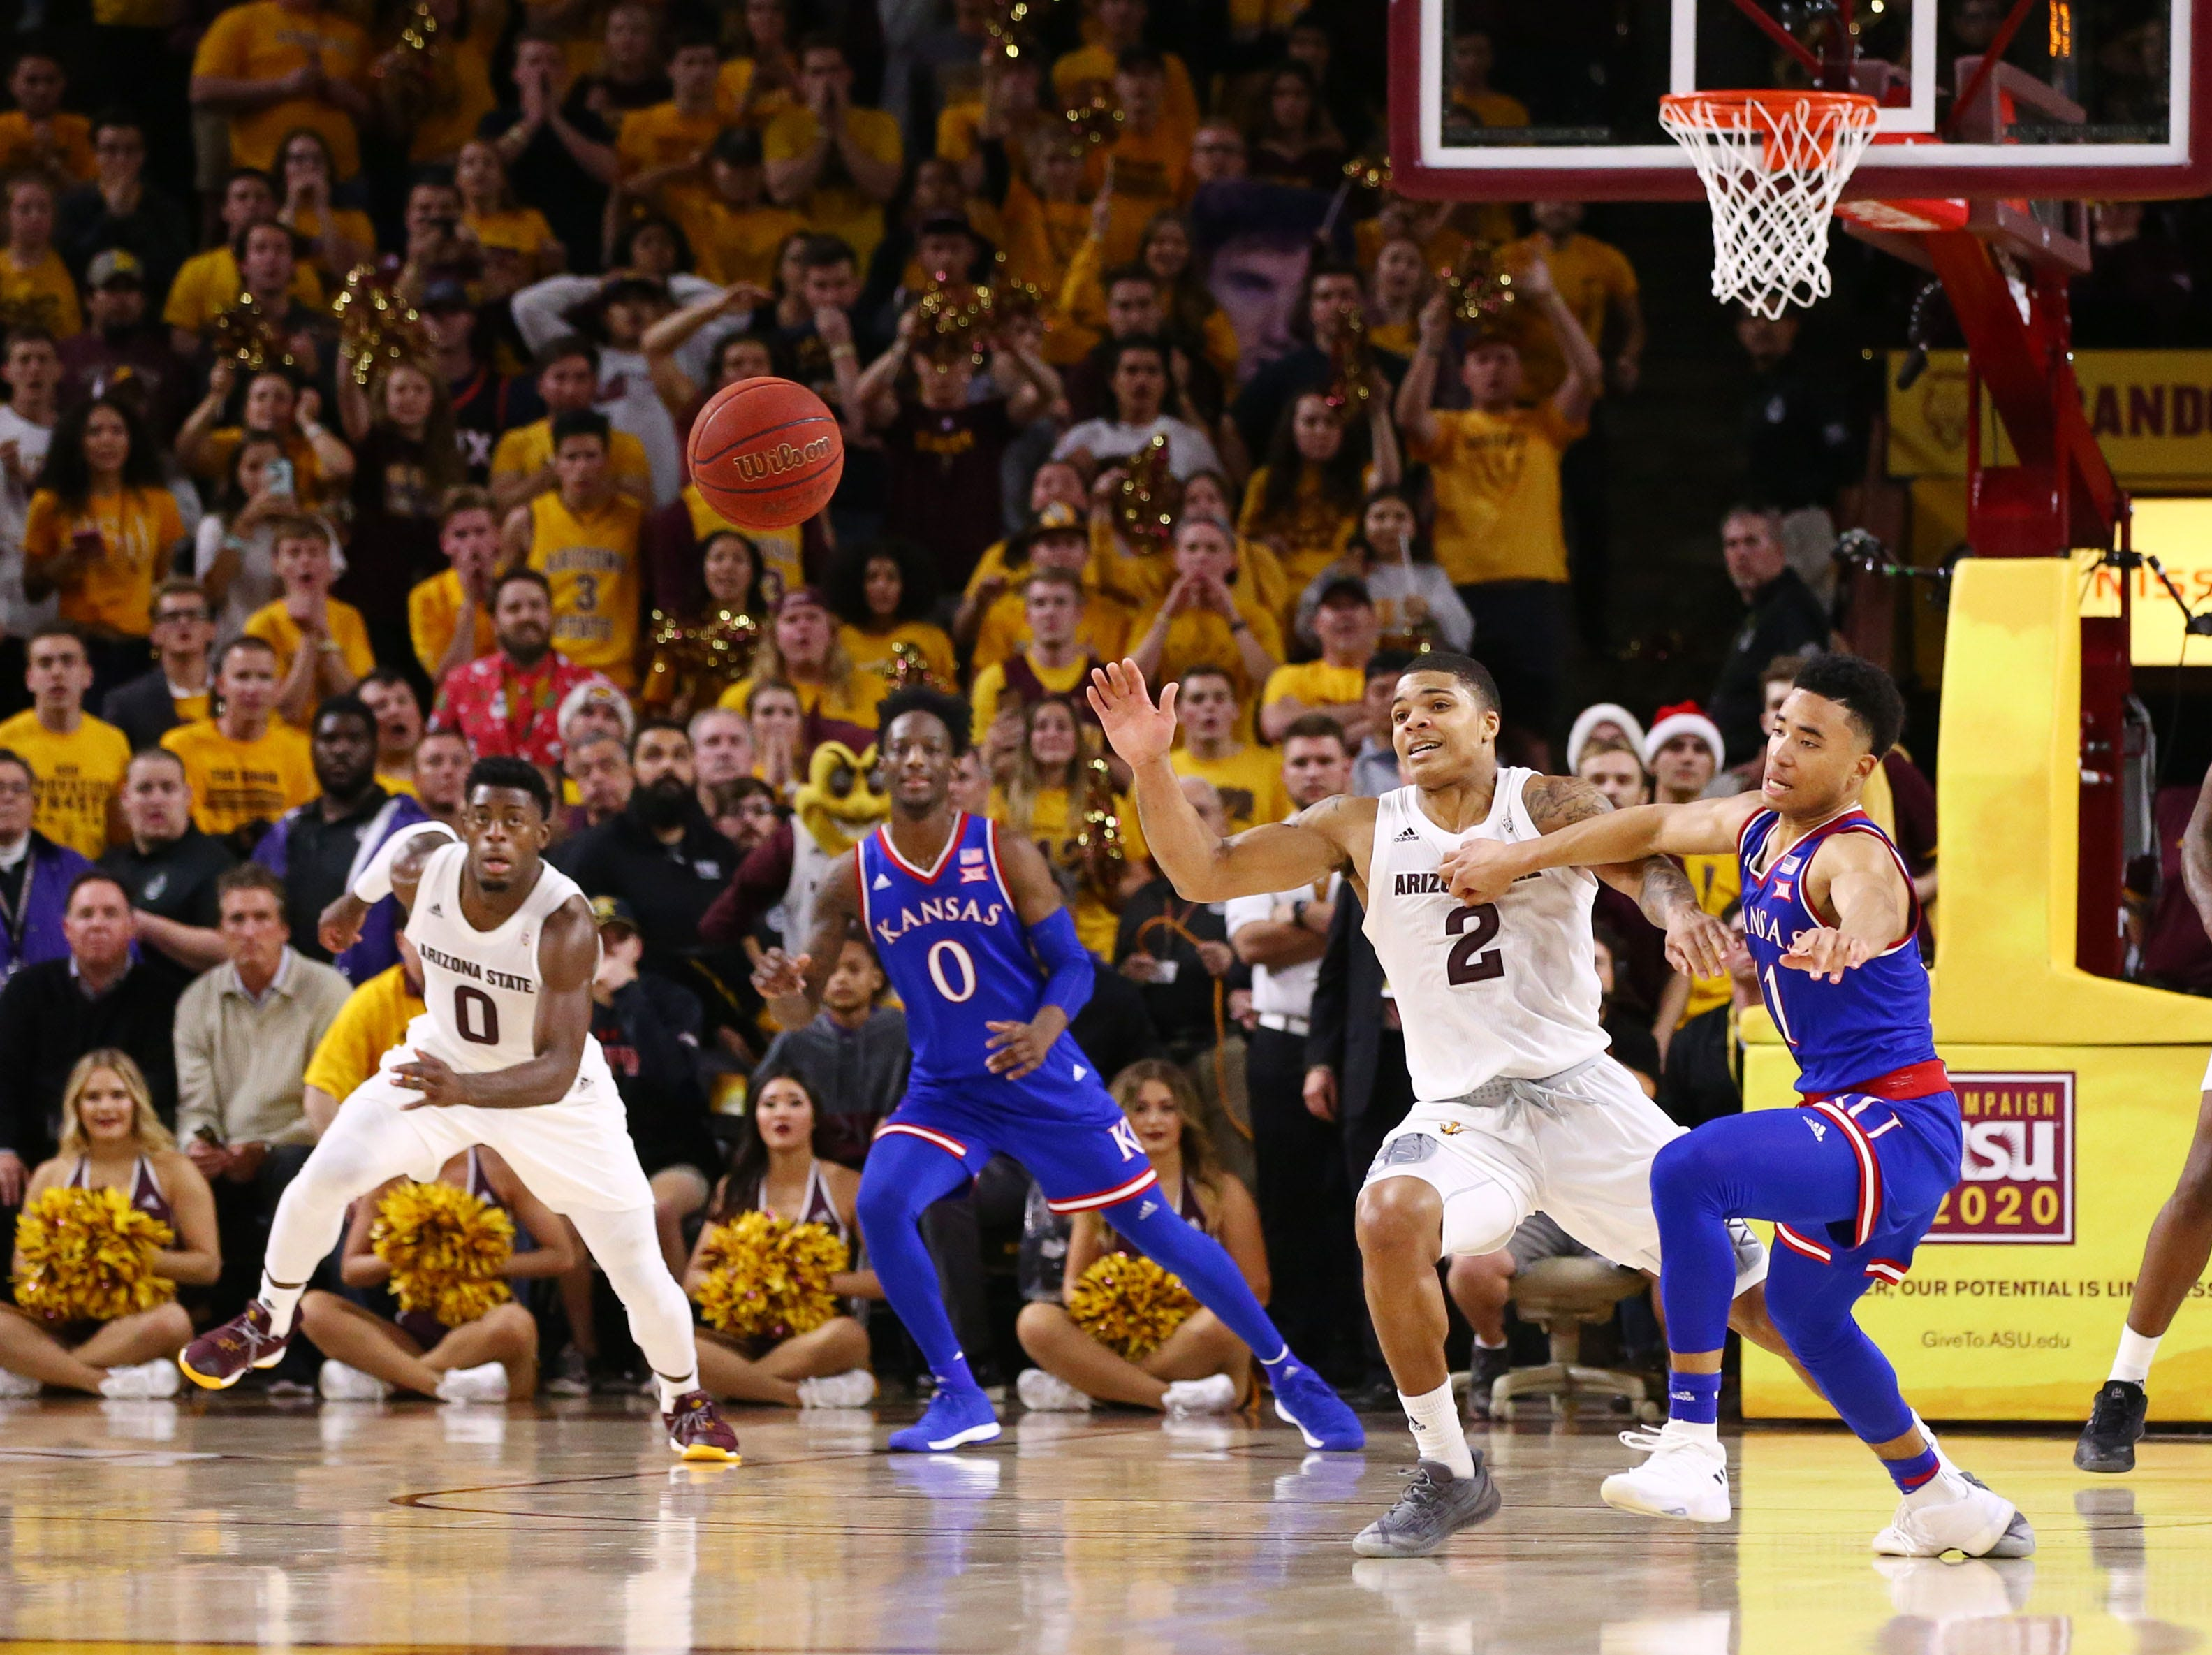 Kansas throws the ball away against Arizona State late in the second half on Dec. 22 at Wells Fargo Arena.